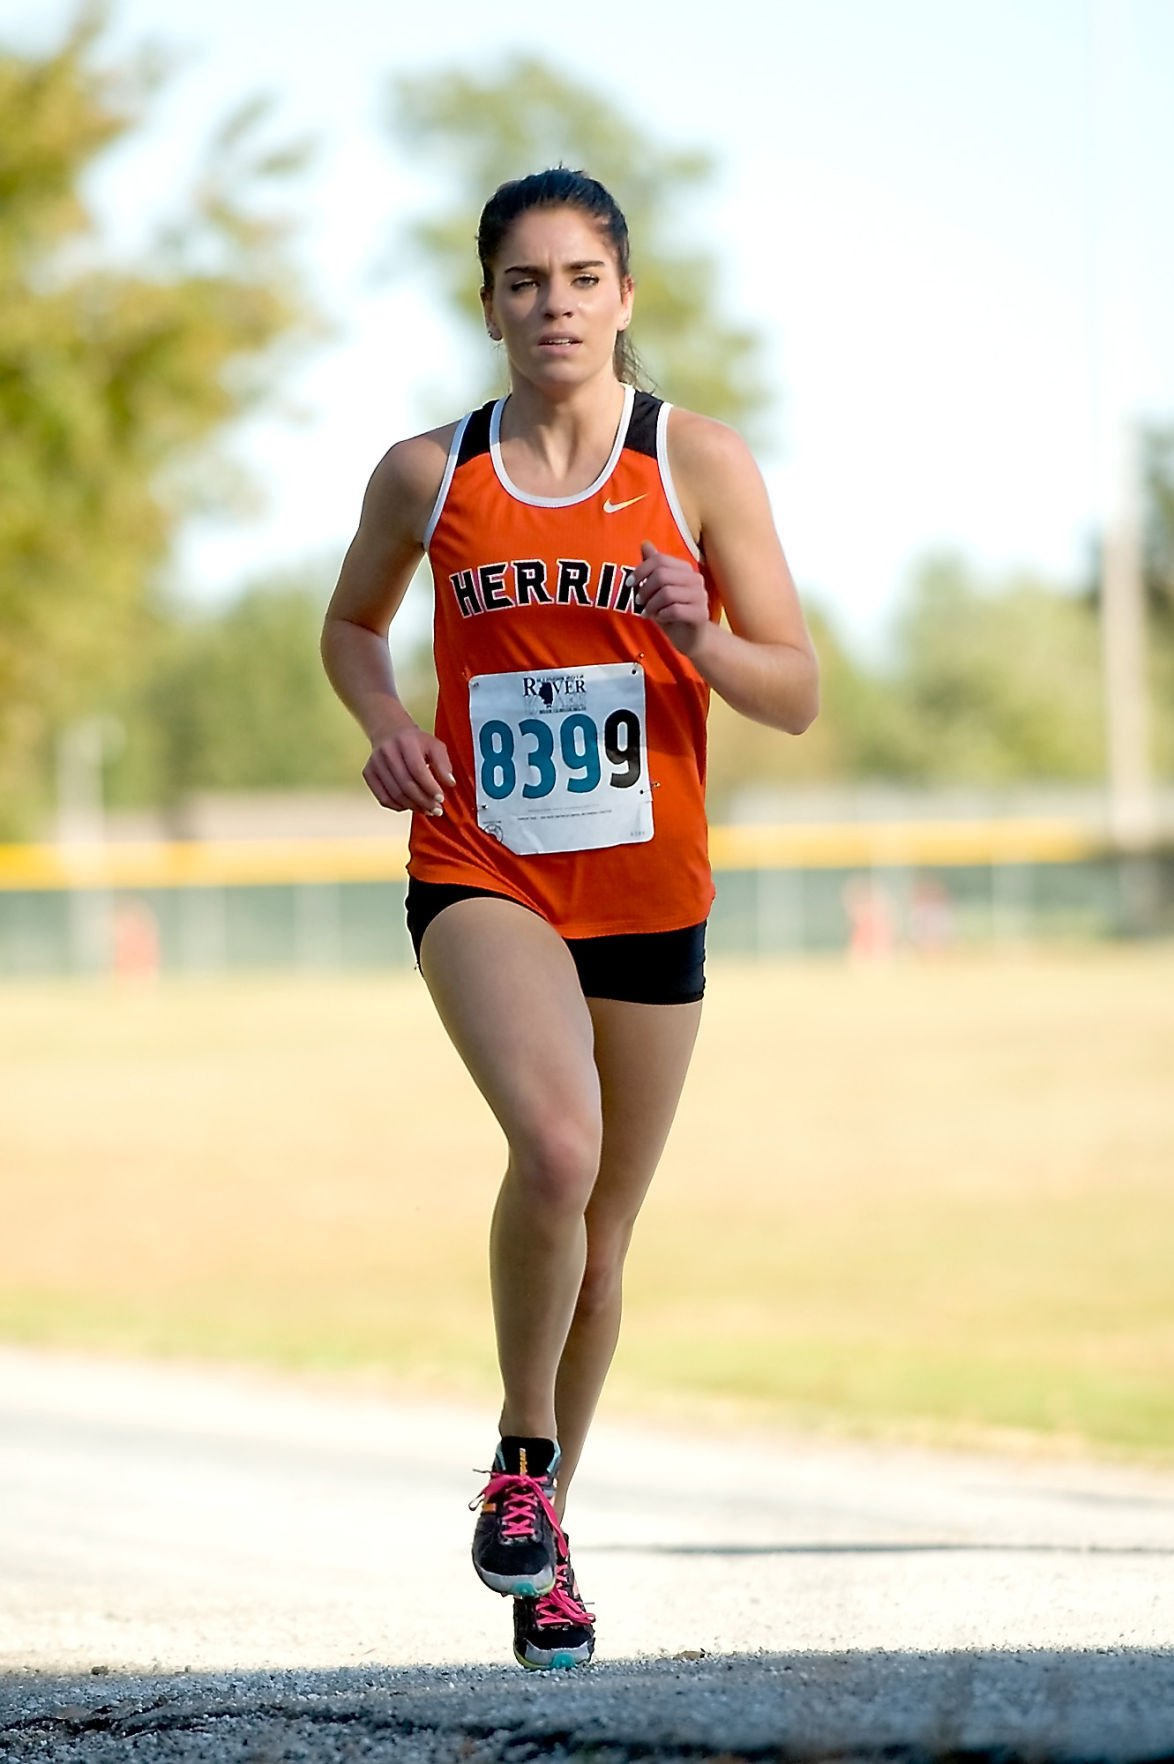 herrin pinckneyville win cross country sectional titles more sports herrin pinckneyville lead area cross country contingent